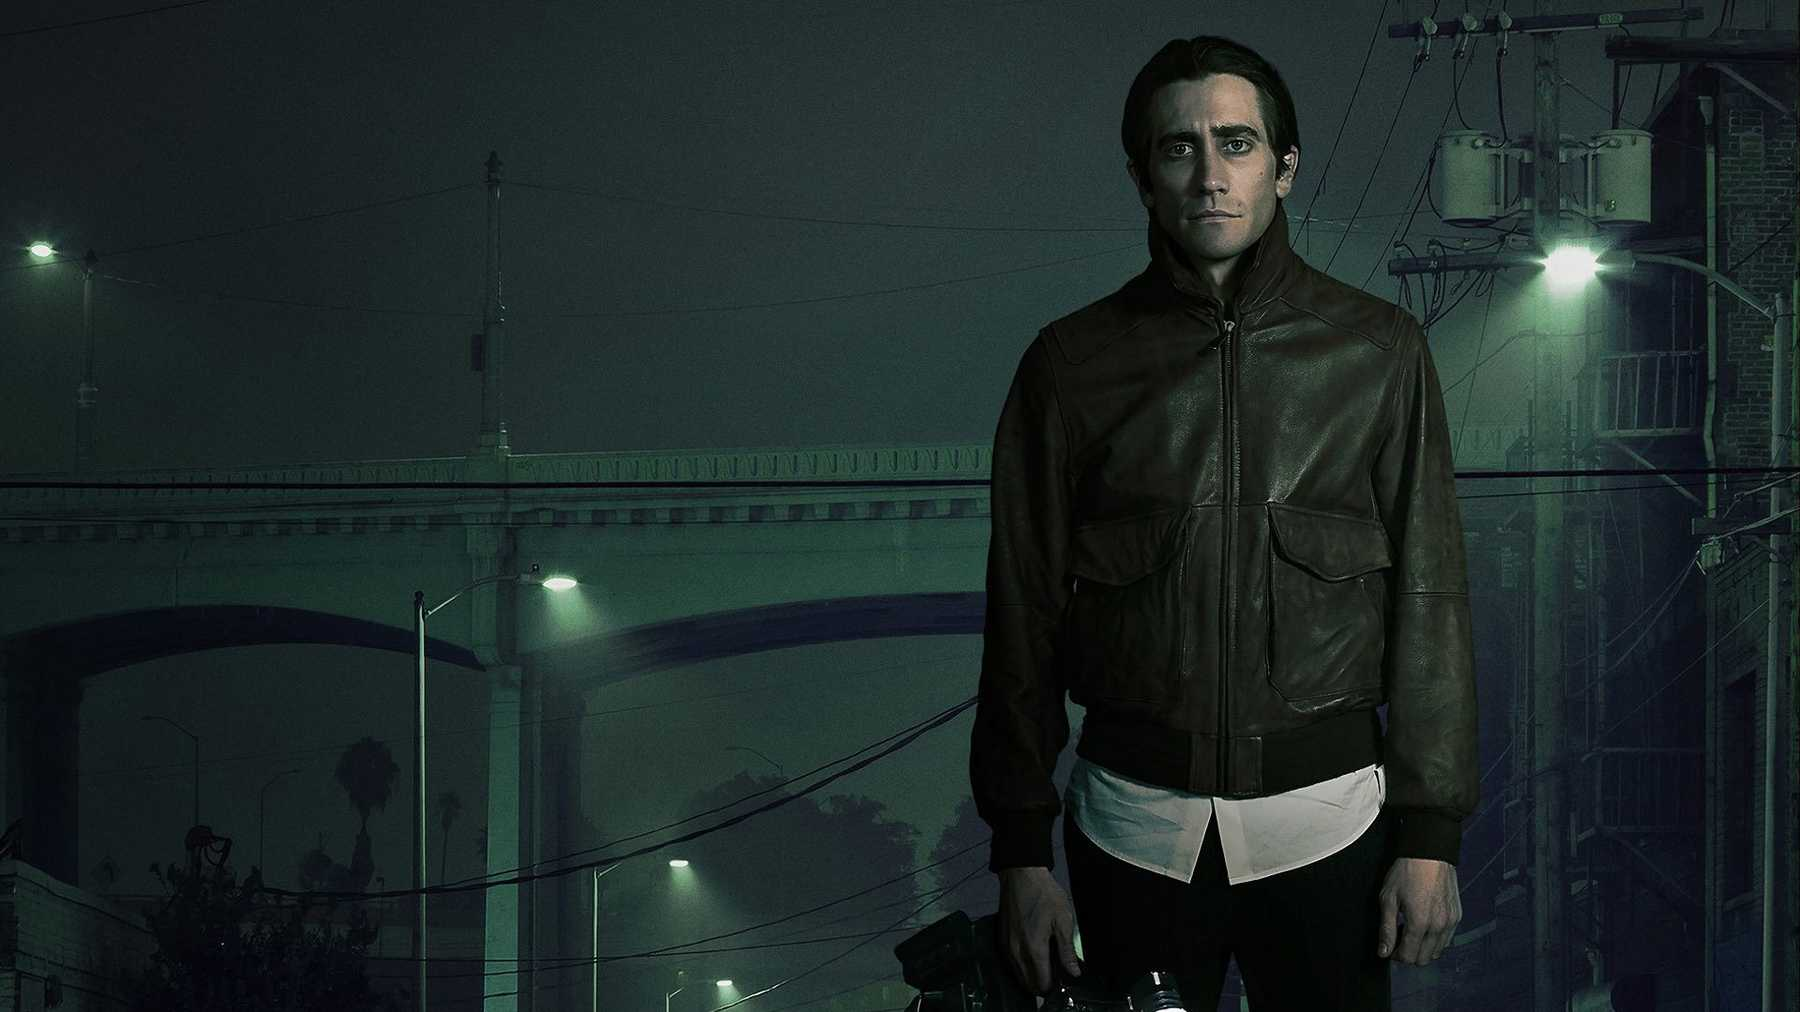 Top 10 Thrillers of the 2010s - Nightcrawler